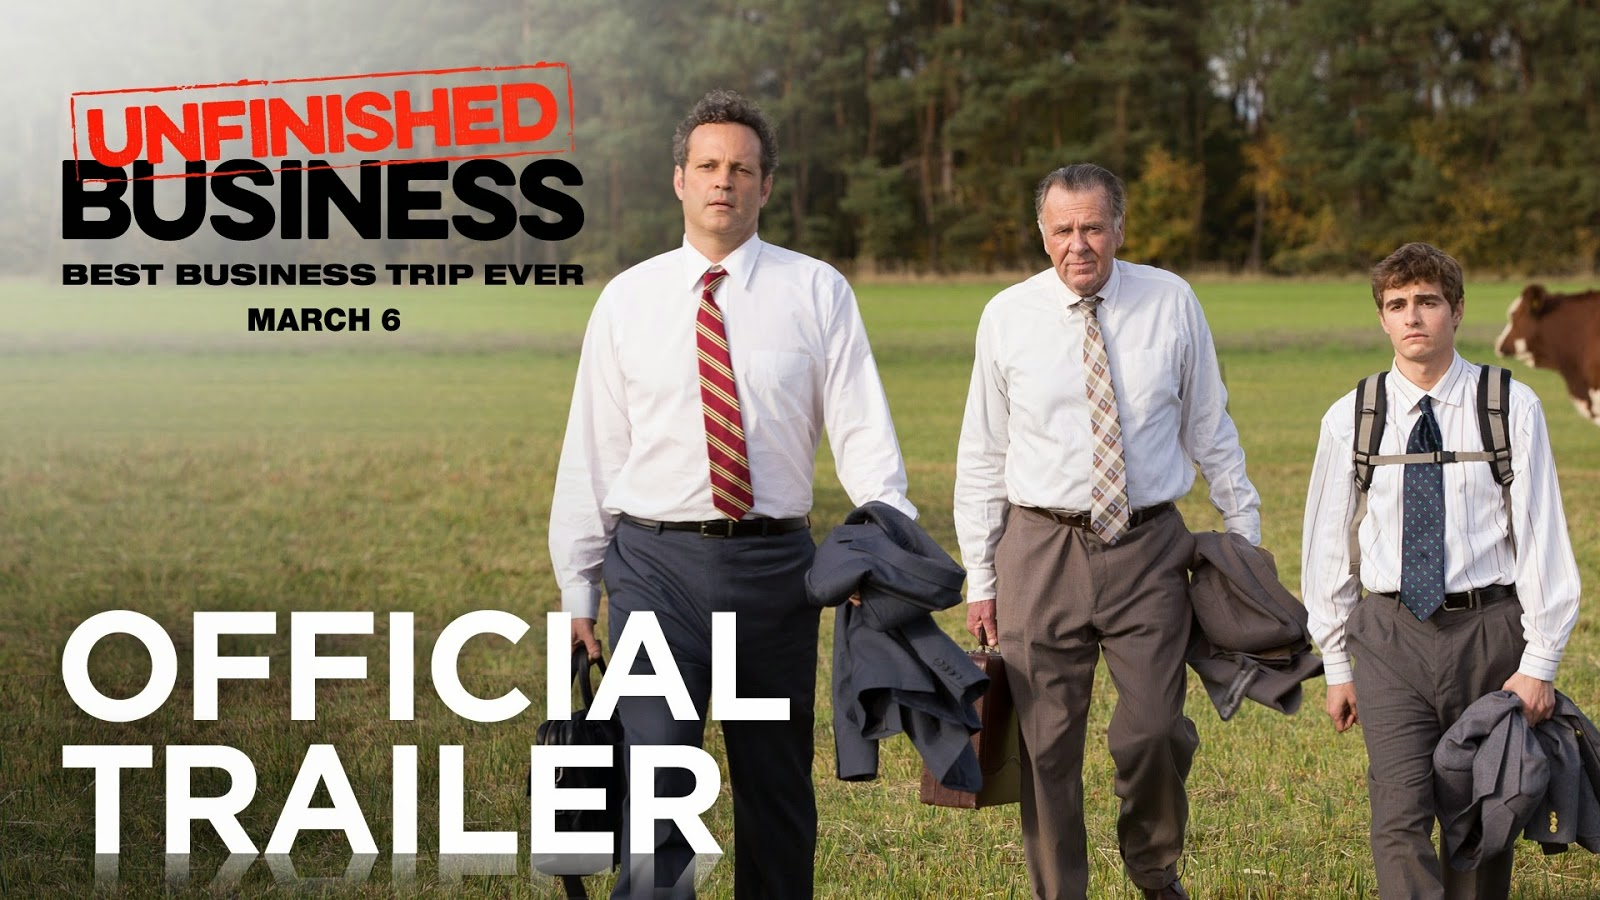 Sinopsis Film Unfinished Business (2015) Bahasa Indonesia